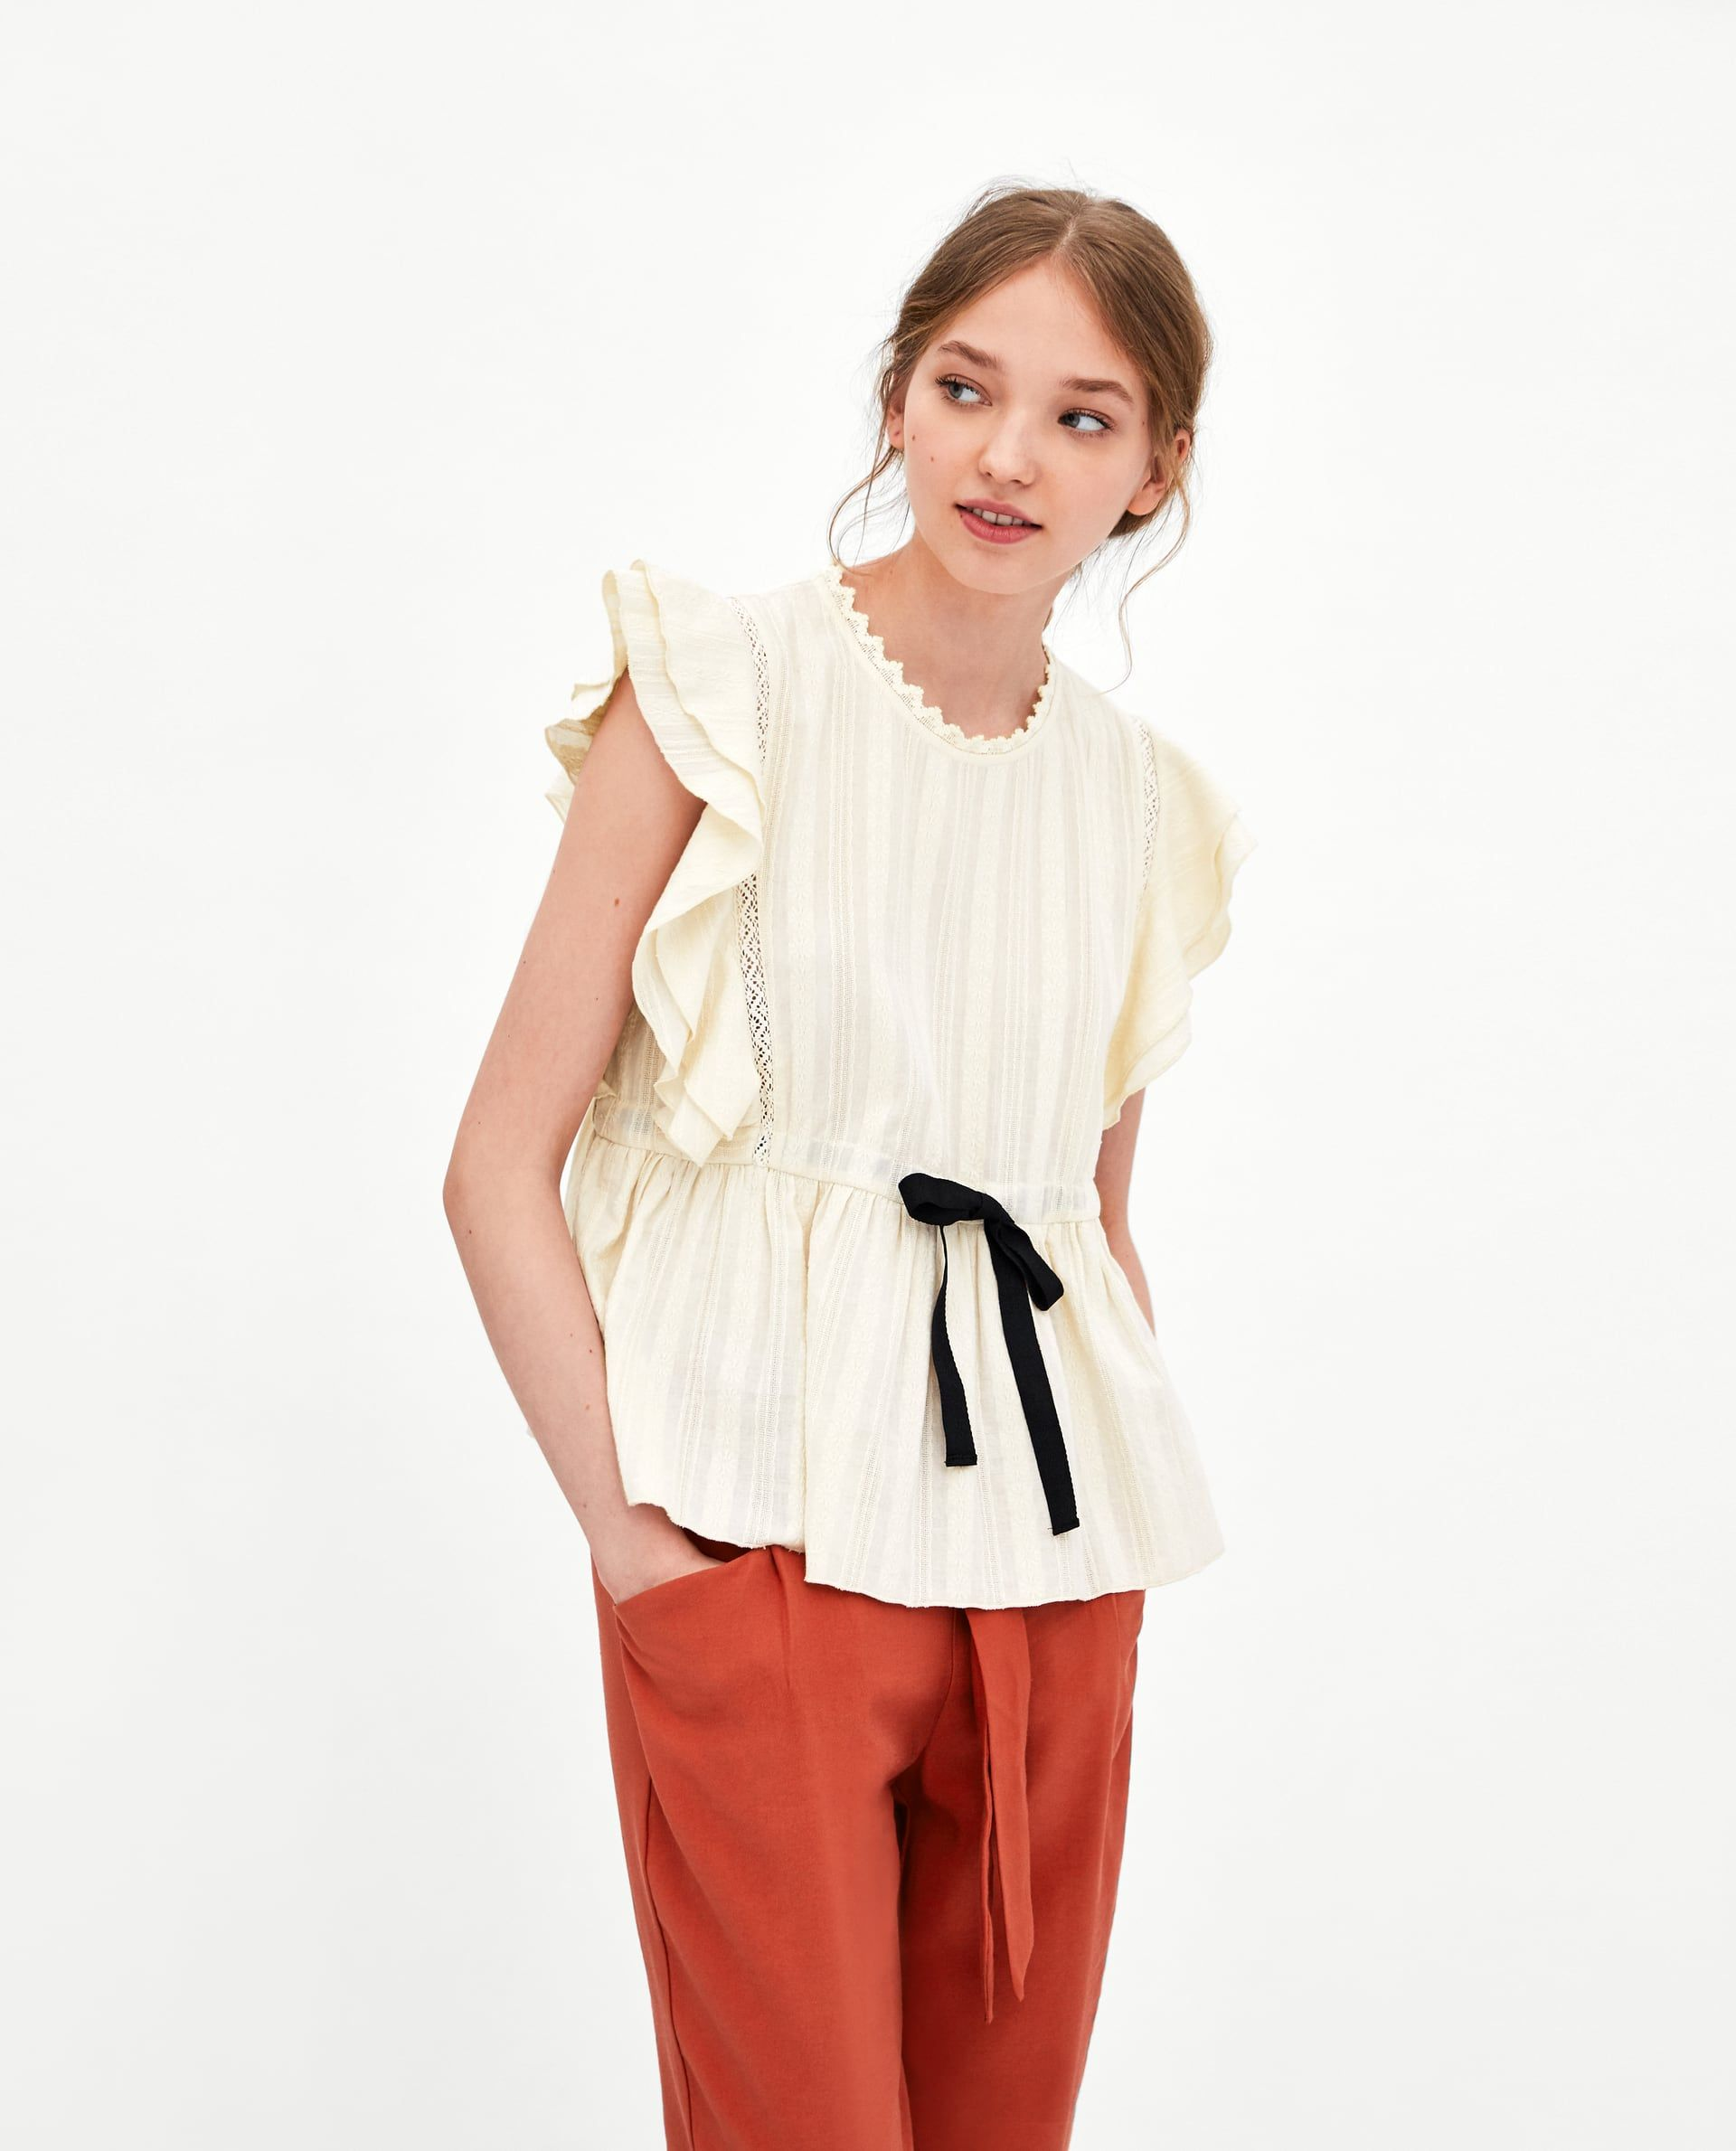 975e16a5 TOP WITH CONTRASTING BOW Bow Shirts, Shirt Blouses, T Shirt, Zara United  States